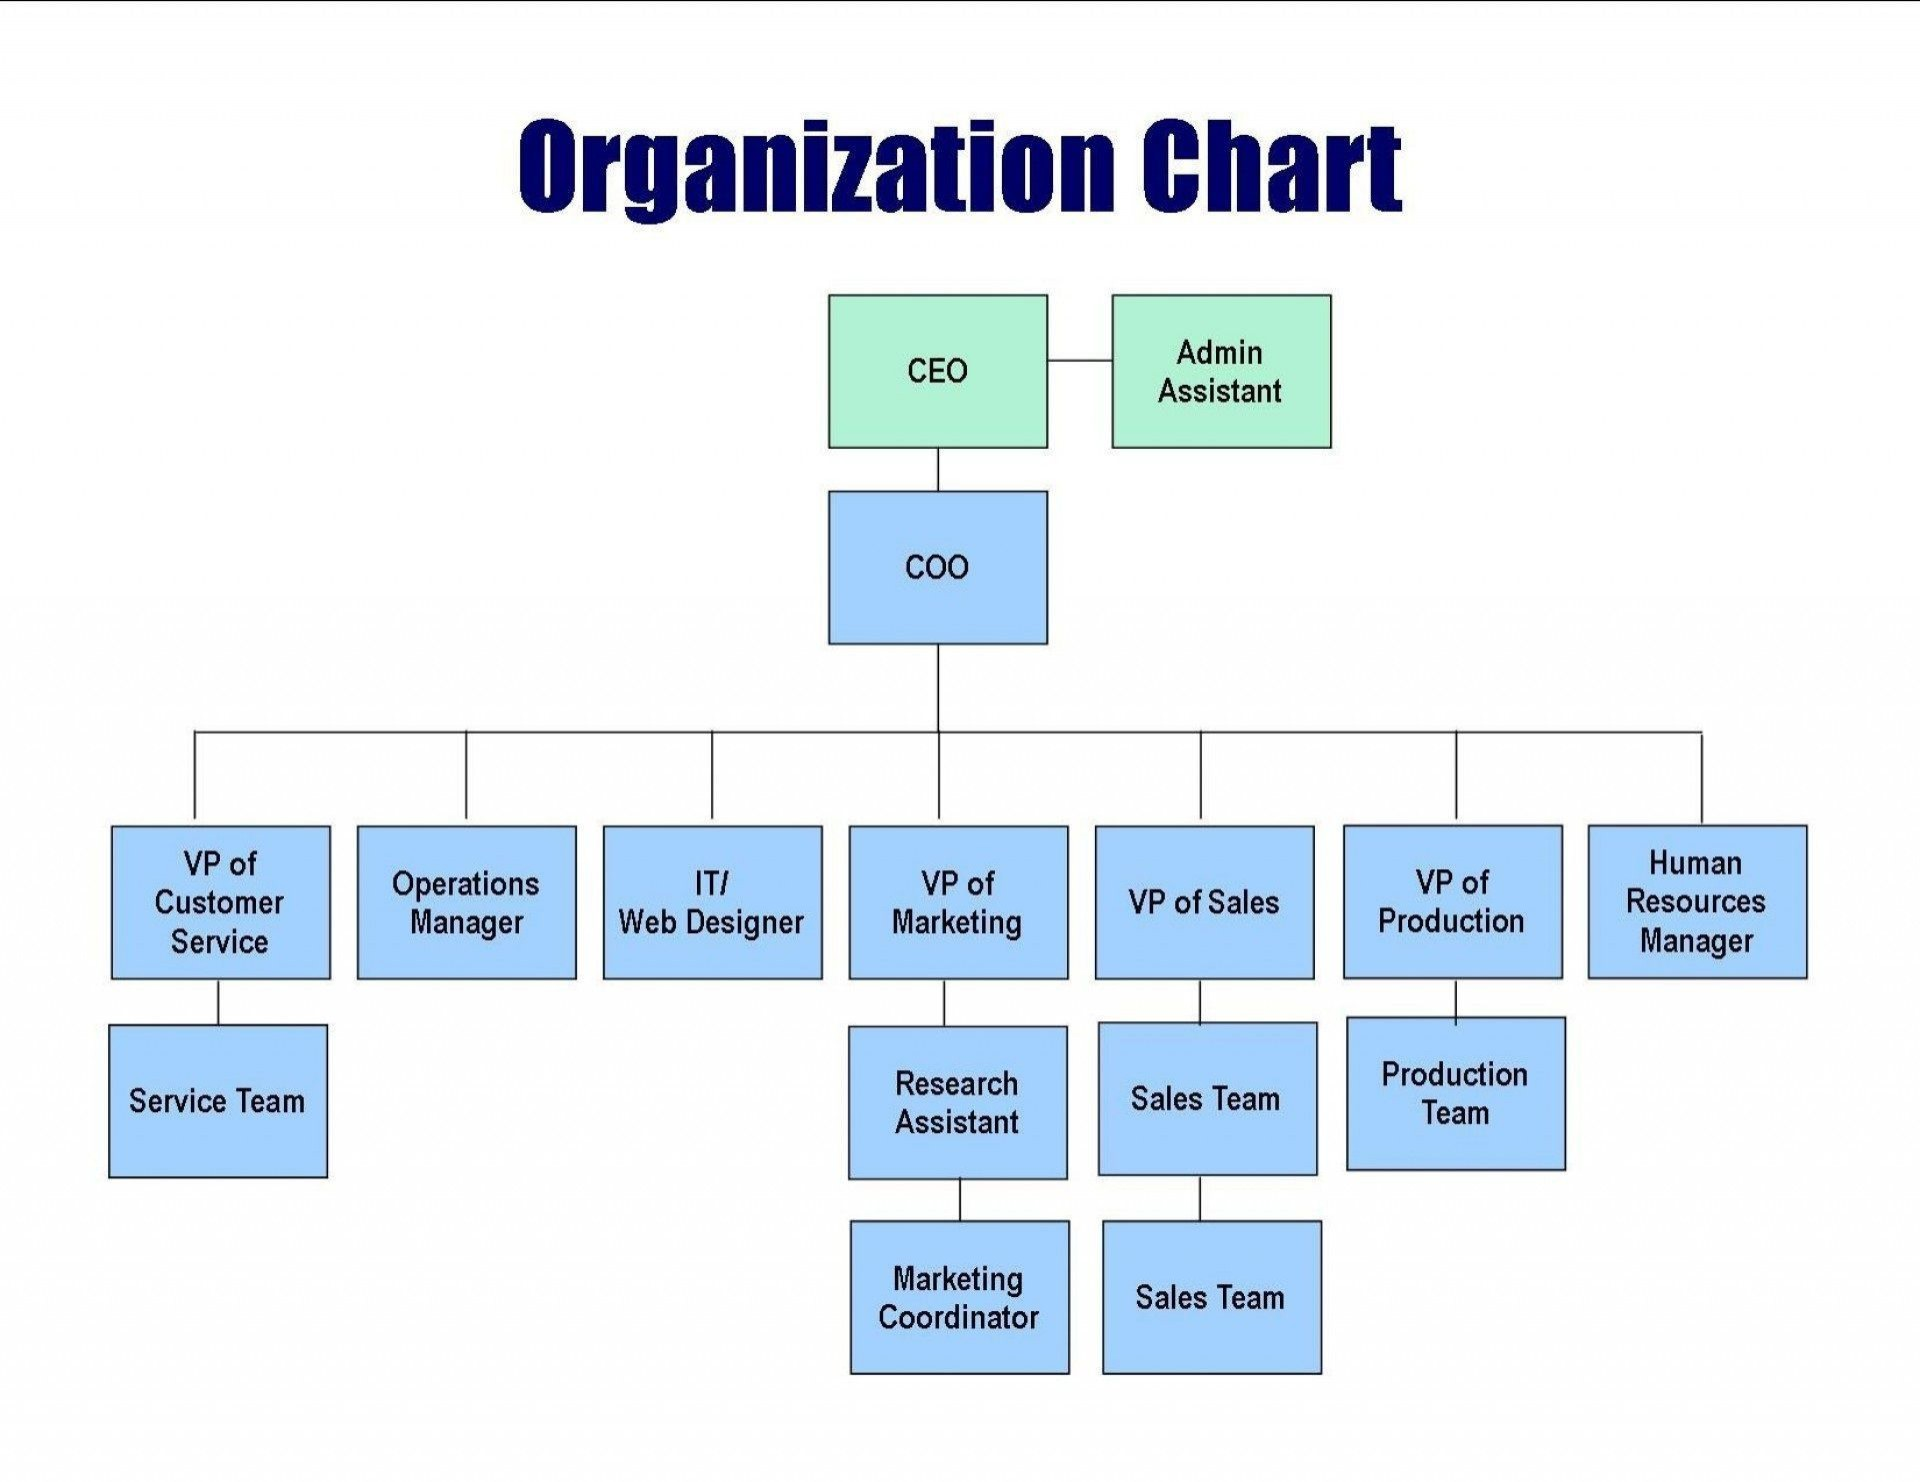 009 Unbelievable Organization Chart Template Word 2013 Photo  Organizational Free1920